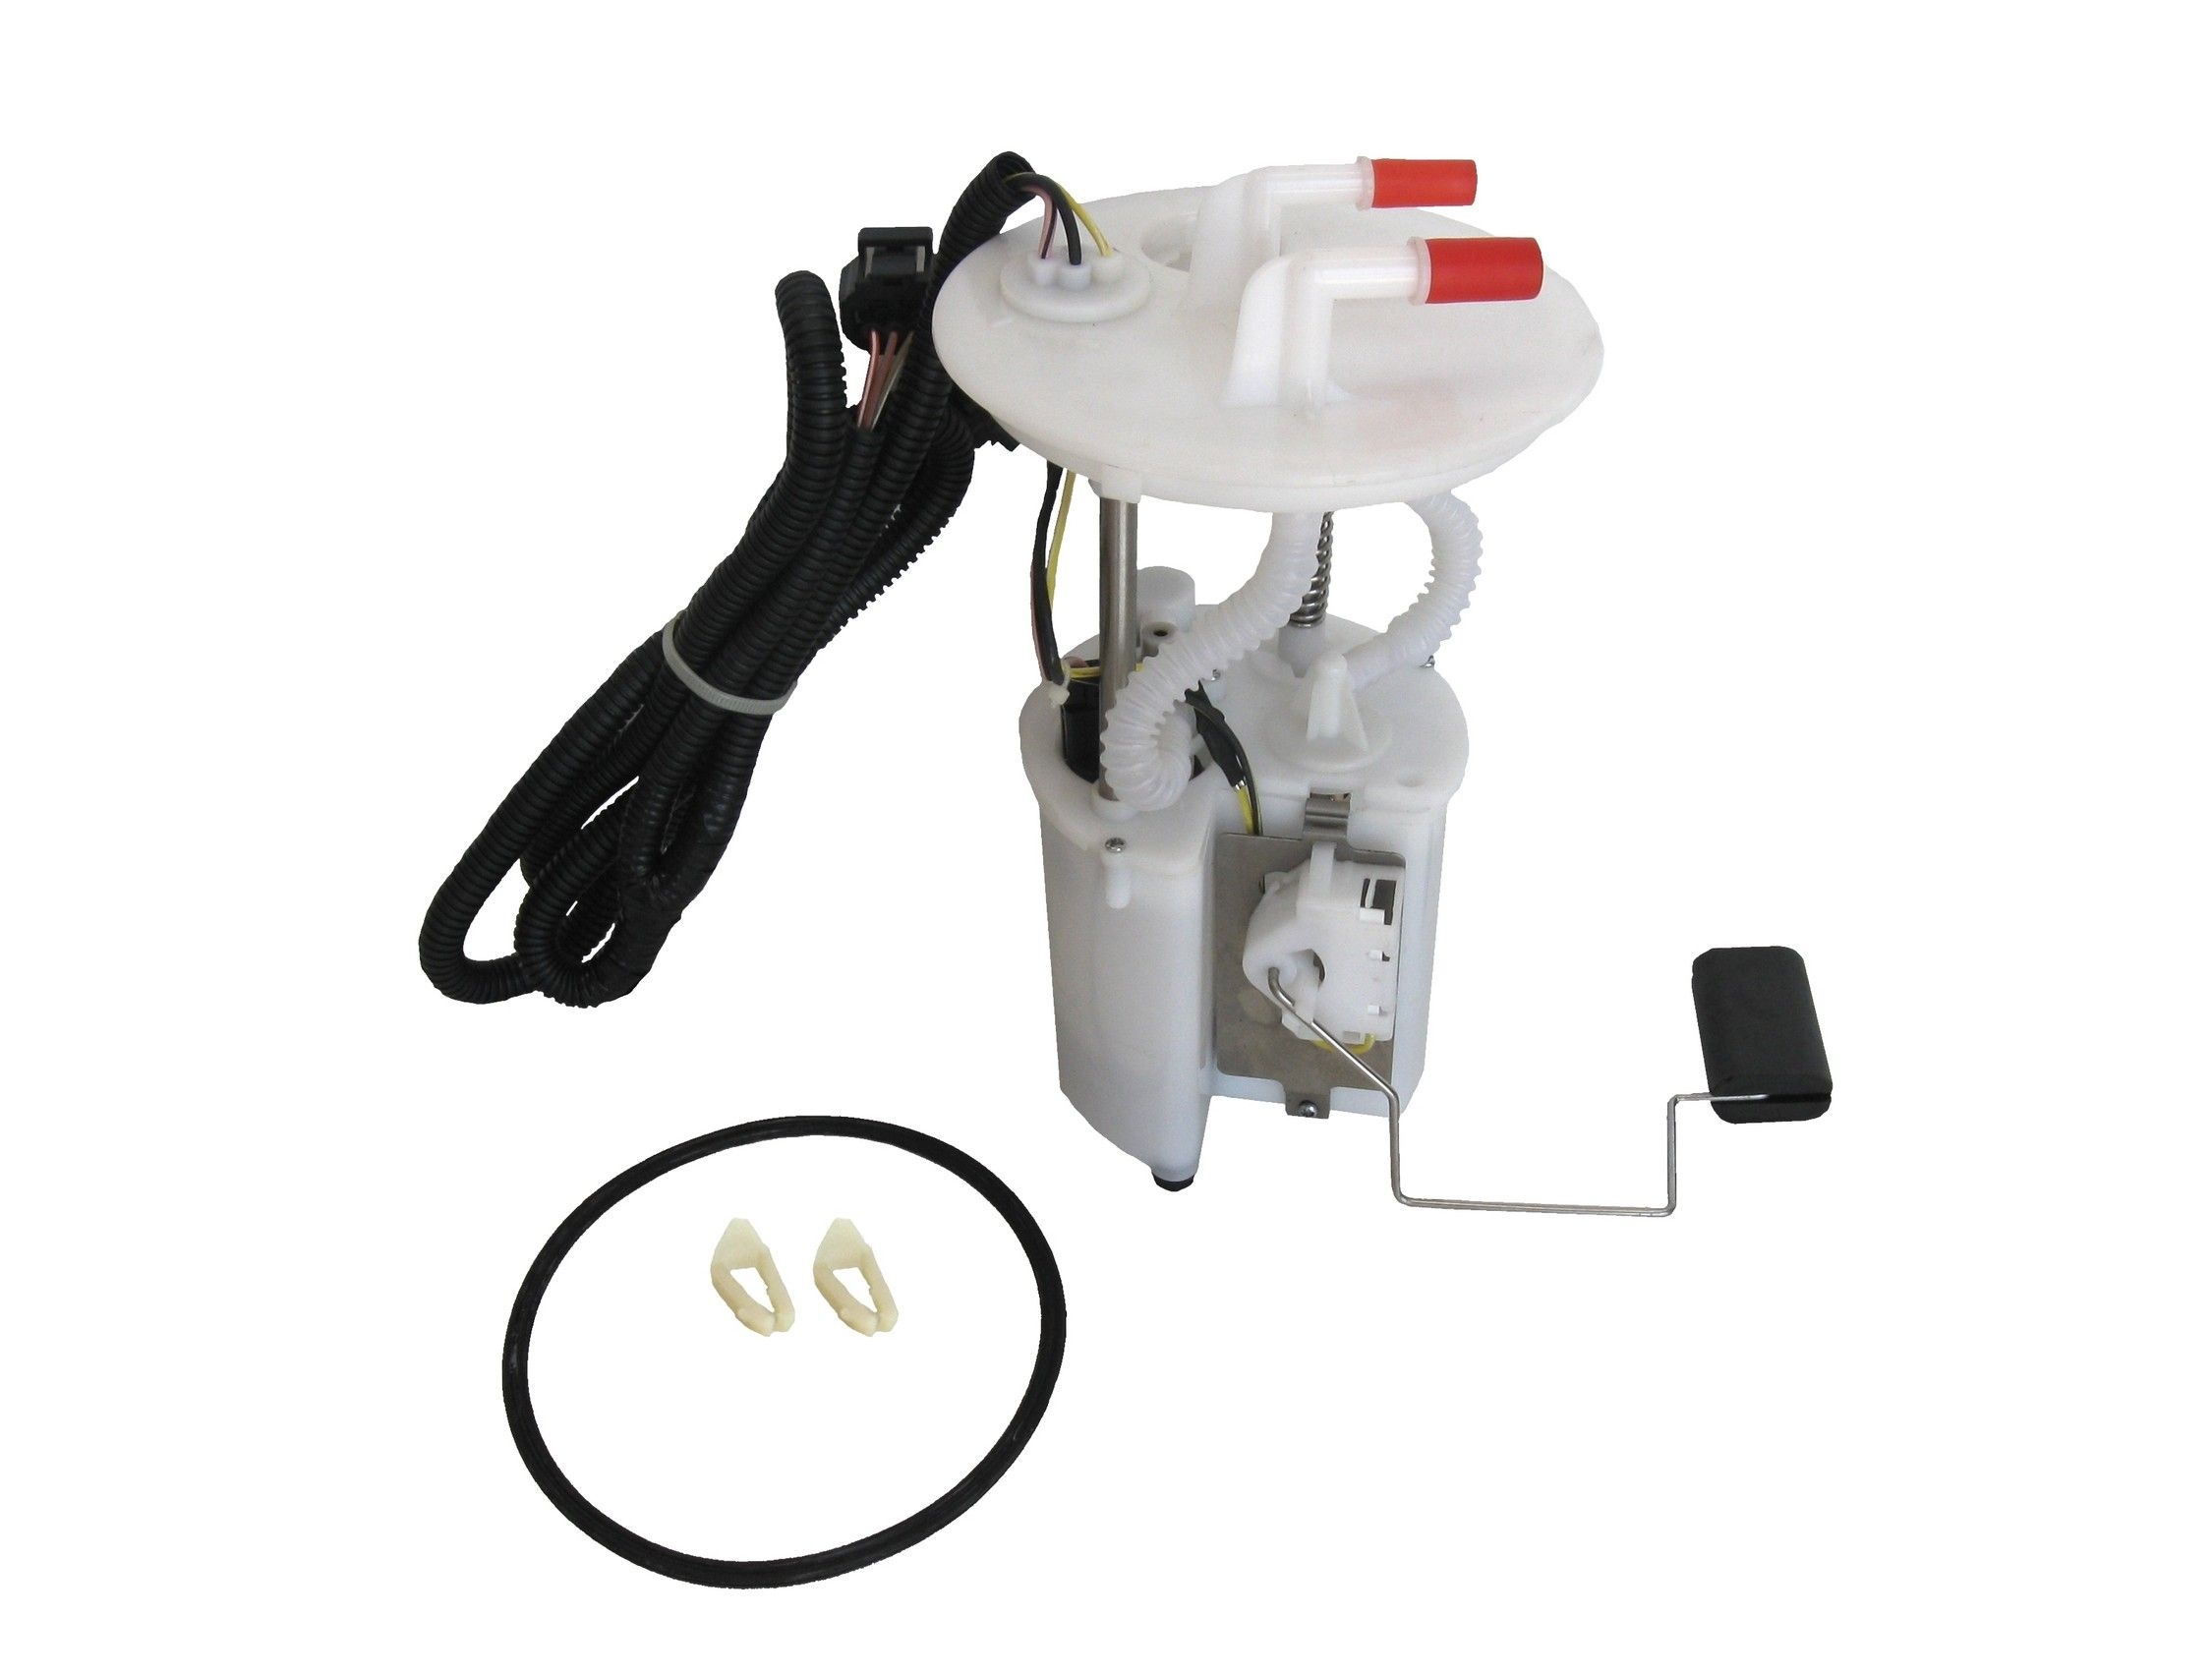 Ford Windstar Fuel Pump Module Assembly Replacement Airtex 2000 Lx 6 Cyl 38l Autobest F1259a Includes Sending Unit Float Reservoir Strainer And Tank